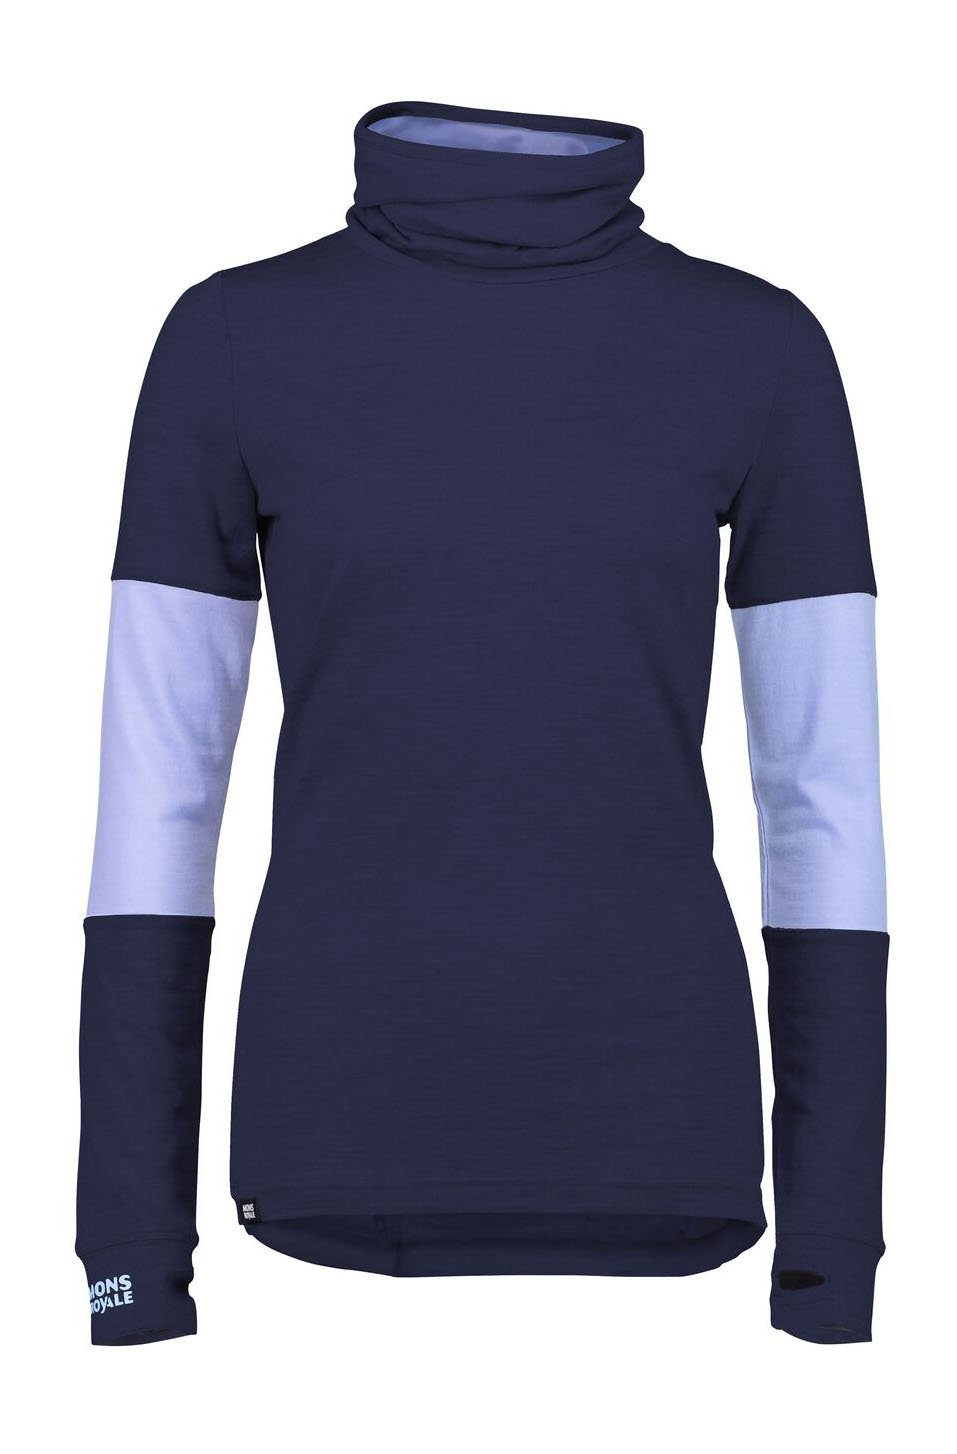 Mons Royale Cornice Rollover LS Base Layer